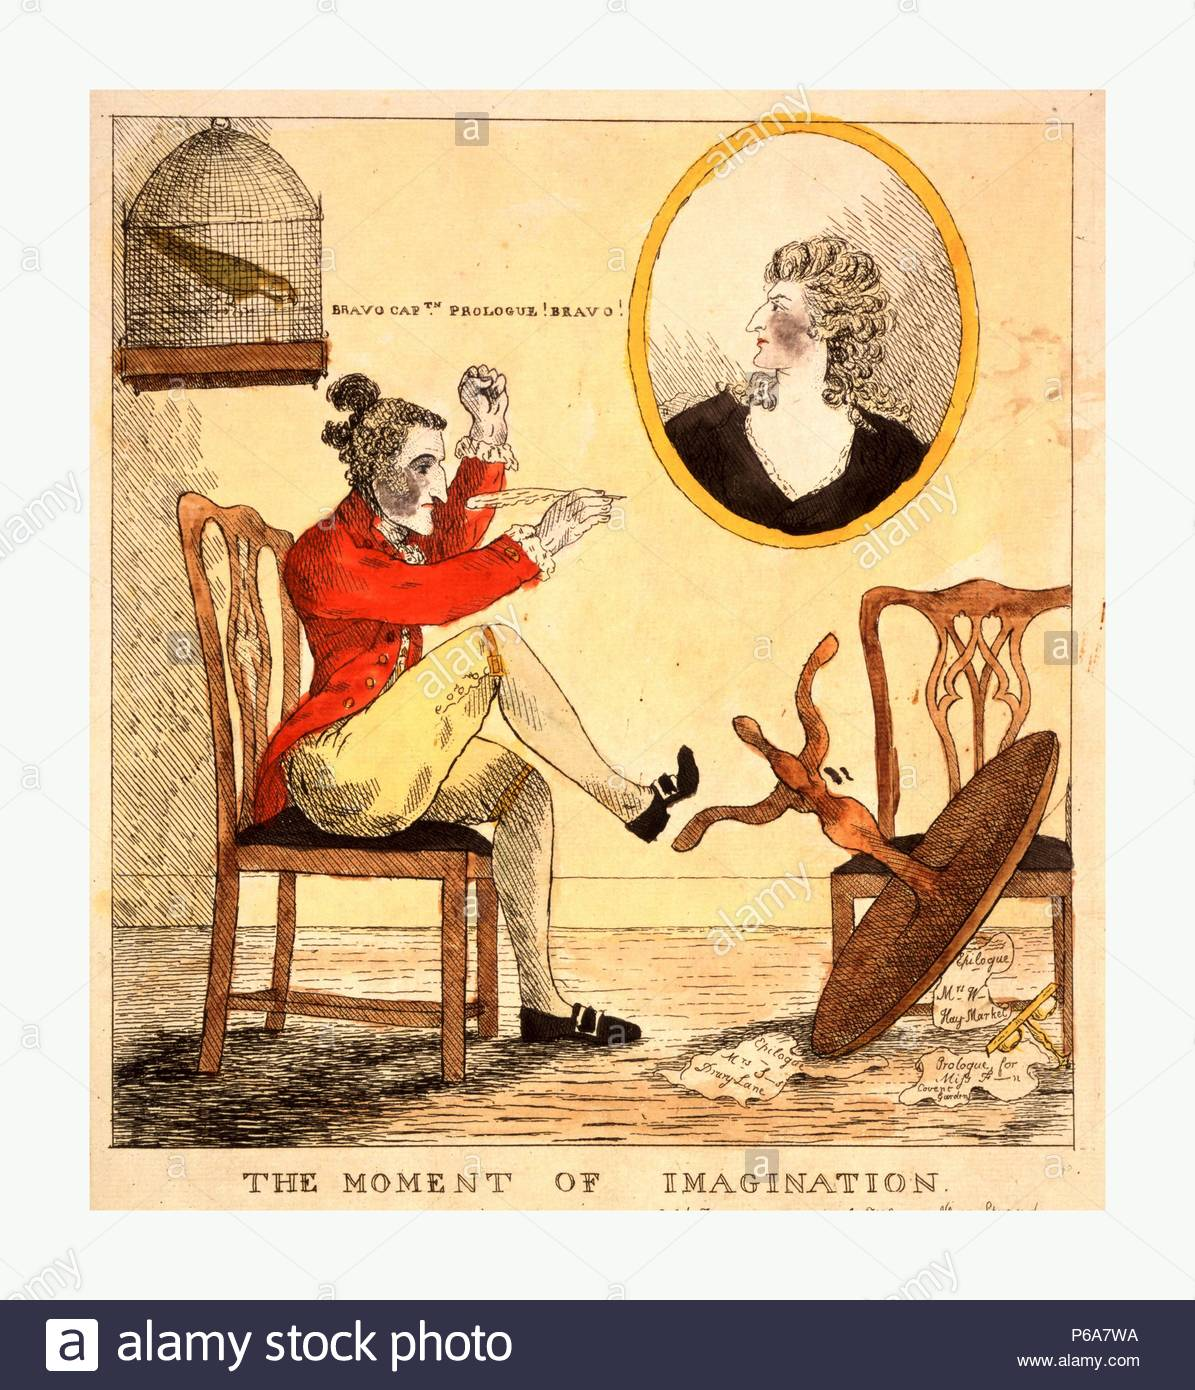 The moment of imagination, engraving 1785, Edward Topham, a pen in his hand, has just kicked over his circular writing table in frenzied inspiration. He raises his clenched fist. An inkstand and fragments of paper inscribed Epilogue Mrs. W... [Wells] Hay-Market, Epilogue Mrs. S...s [Siddons] Drury-Lane, and Prologue for Miss F... [Farren] Covent Garden lie on the floor. On the wall hangs an oval bust portrait of Mrs. Siddons. Over Topham's head is a small parrot in a cage, saying, Bravo Cptn. Prologue! Bravo!. - Stock Image